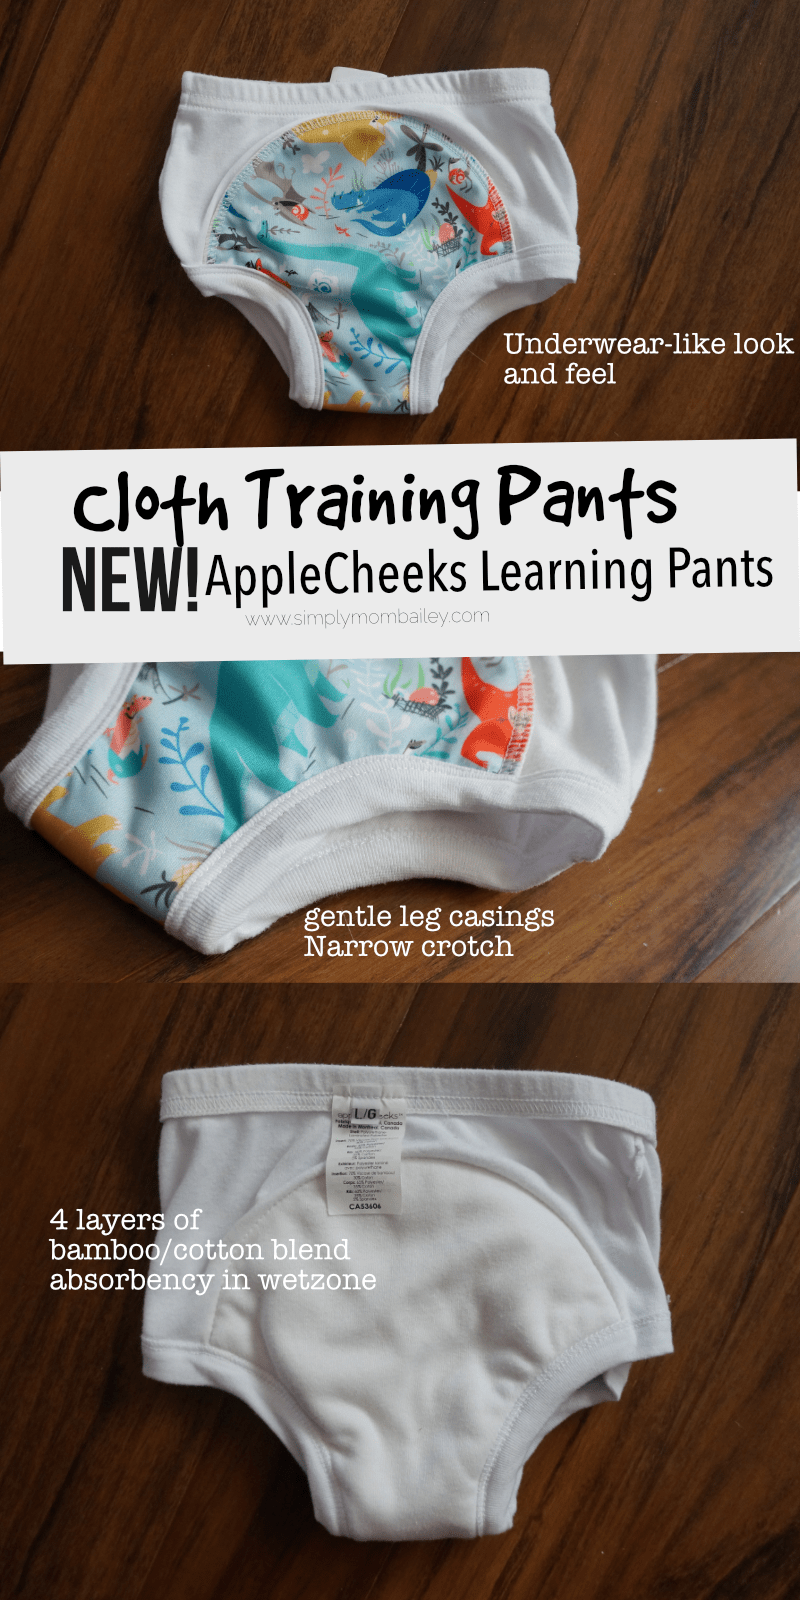 New AppleCheeks Learning Pants for Potty Training Toddlers - Redesigned AppleCheeks - Cloth Trainers - Cloth Underwear - Potty Training - Toilet Training - Pull Ups